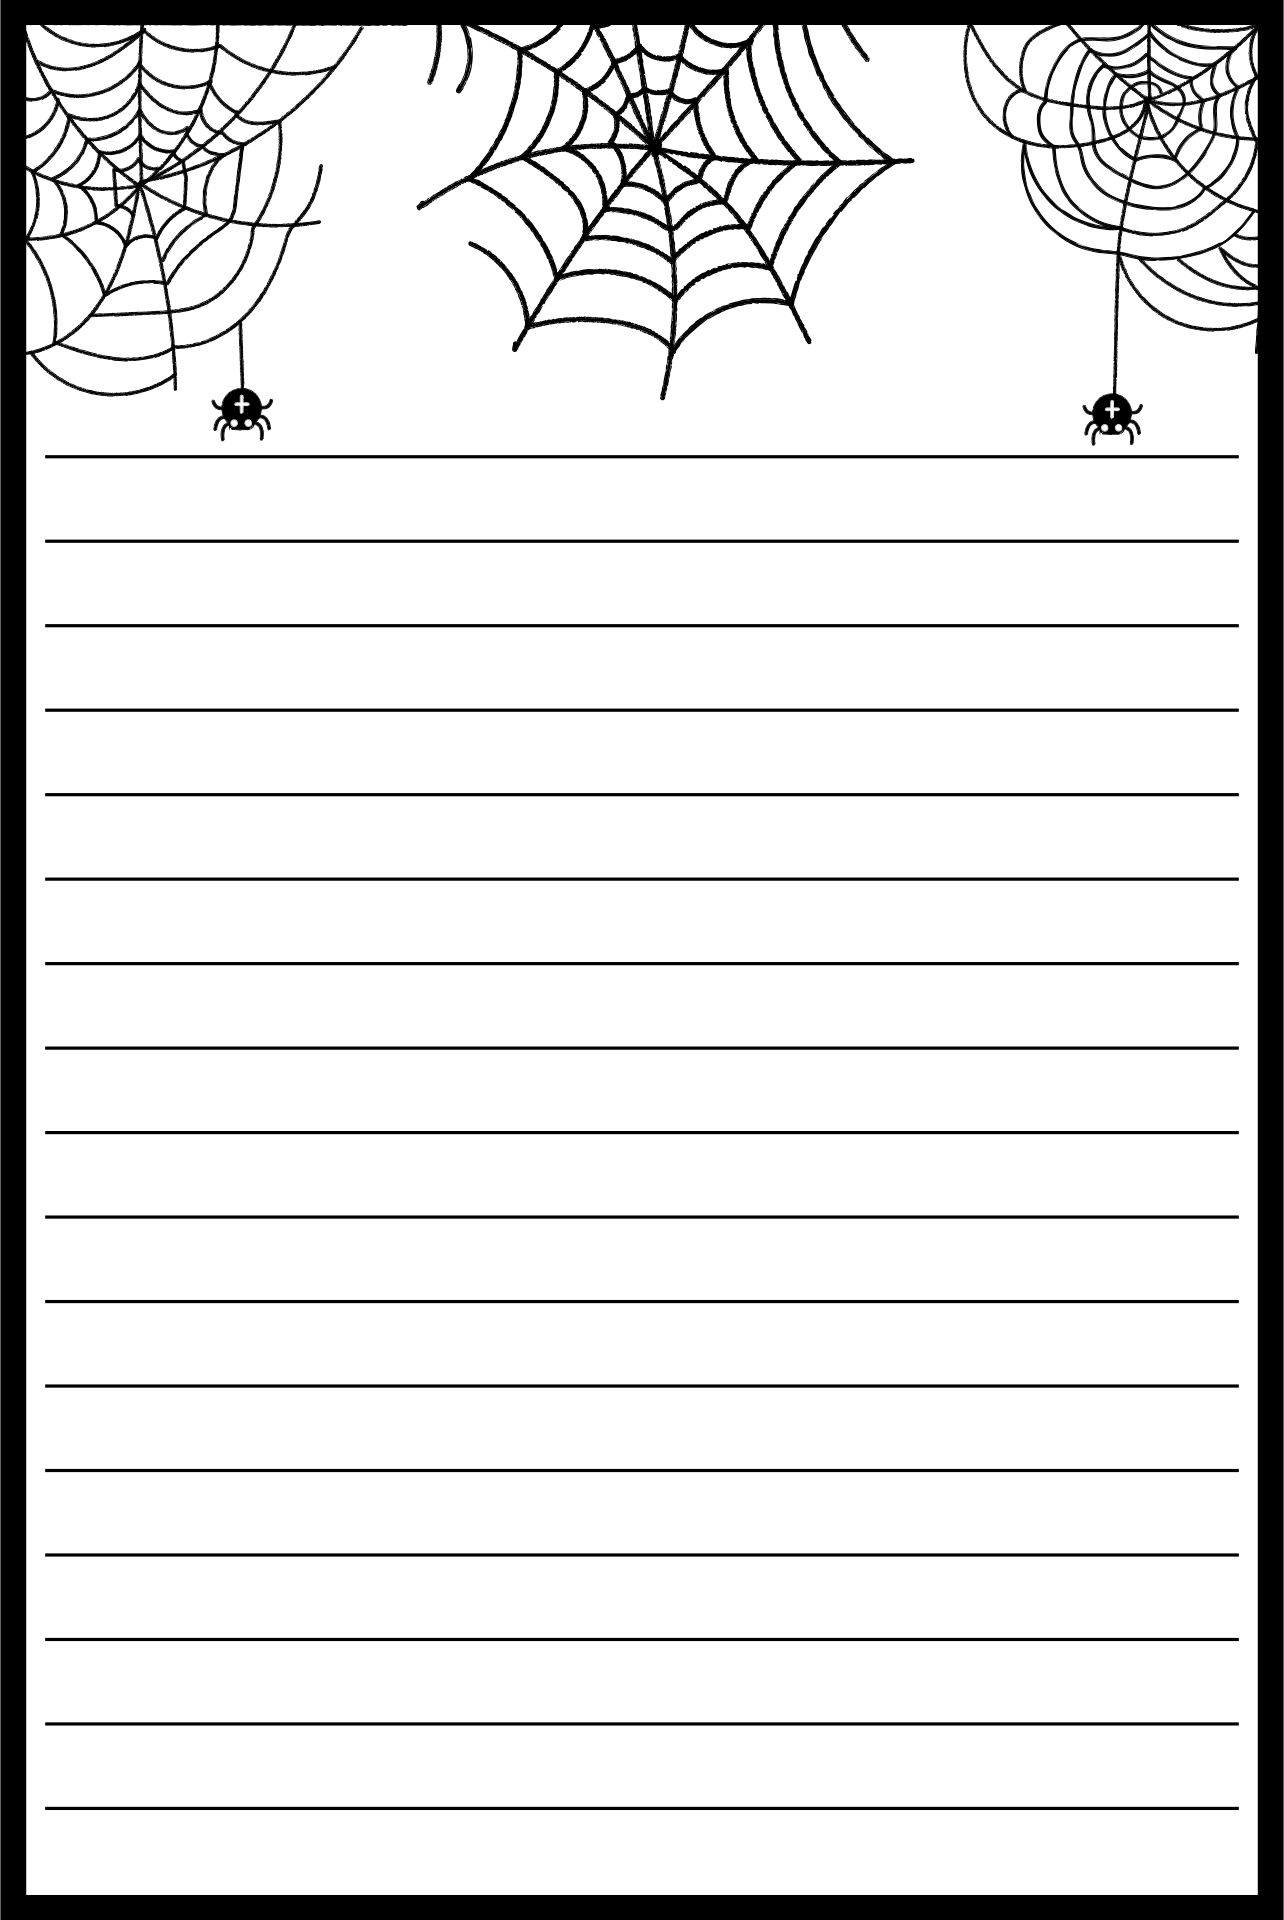 Spider Web Writing Paper For Kids Printable